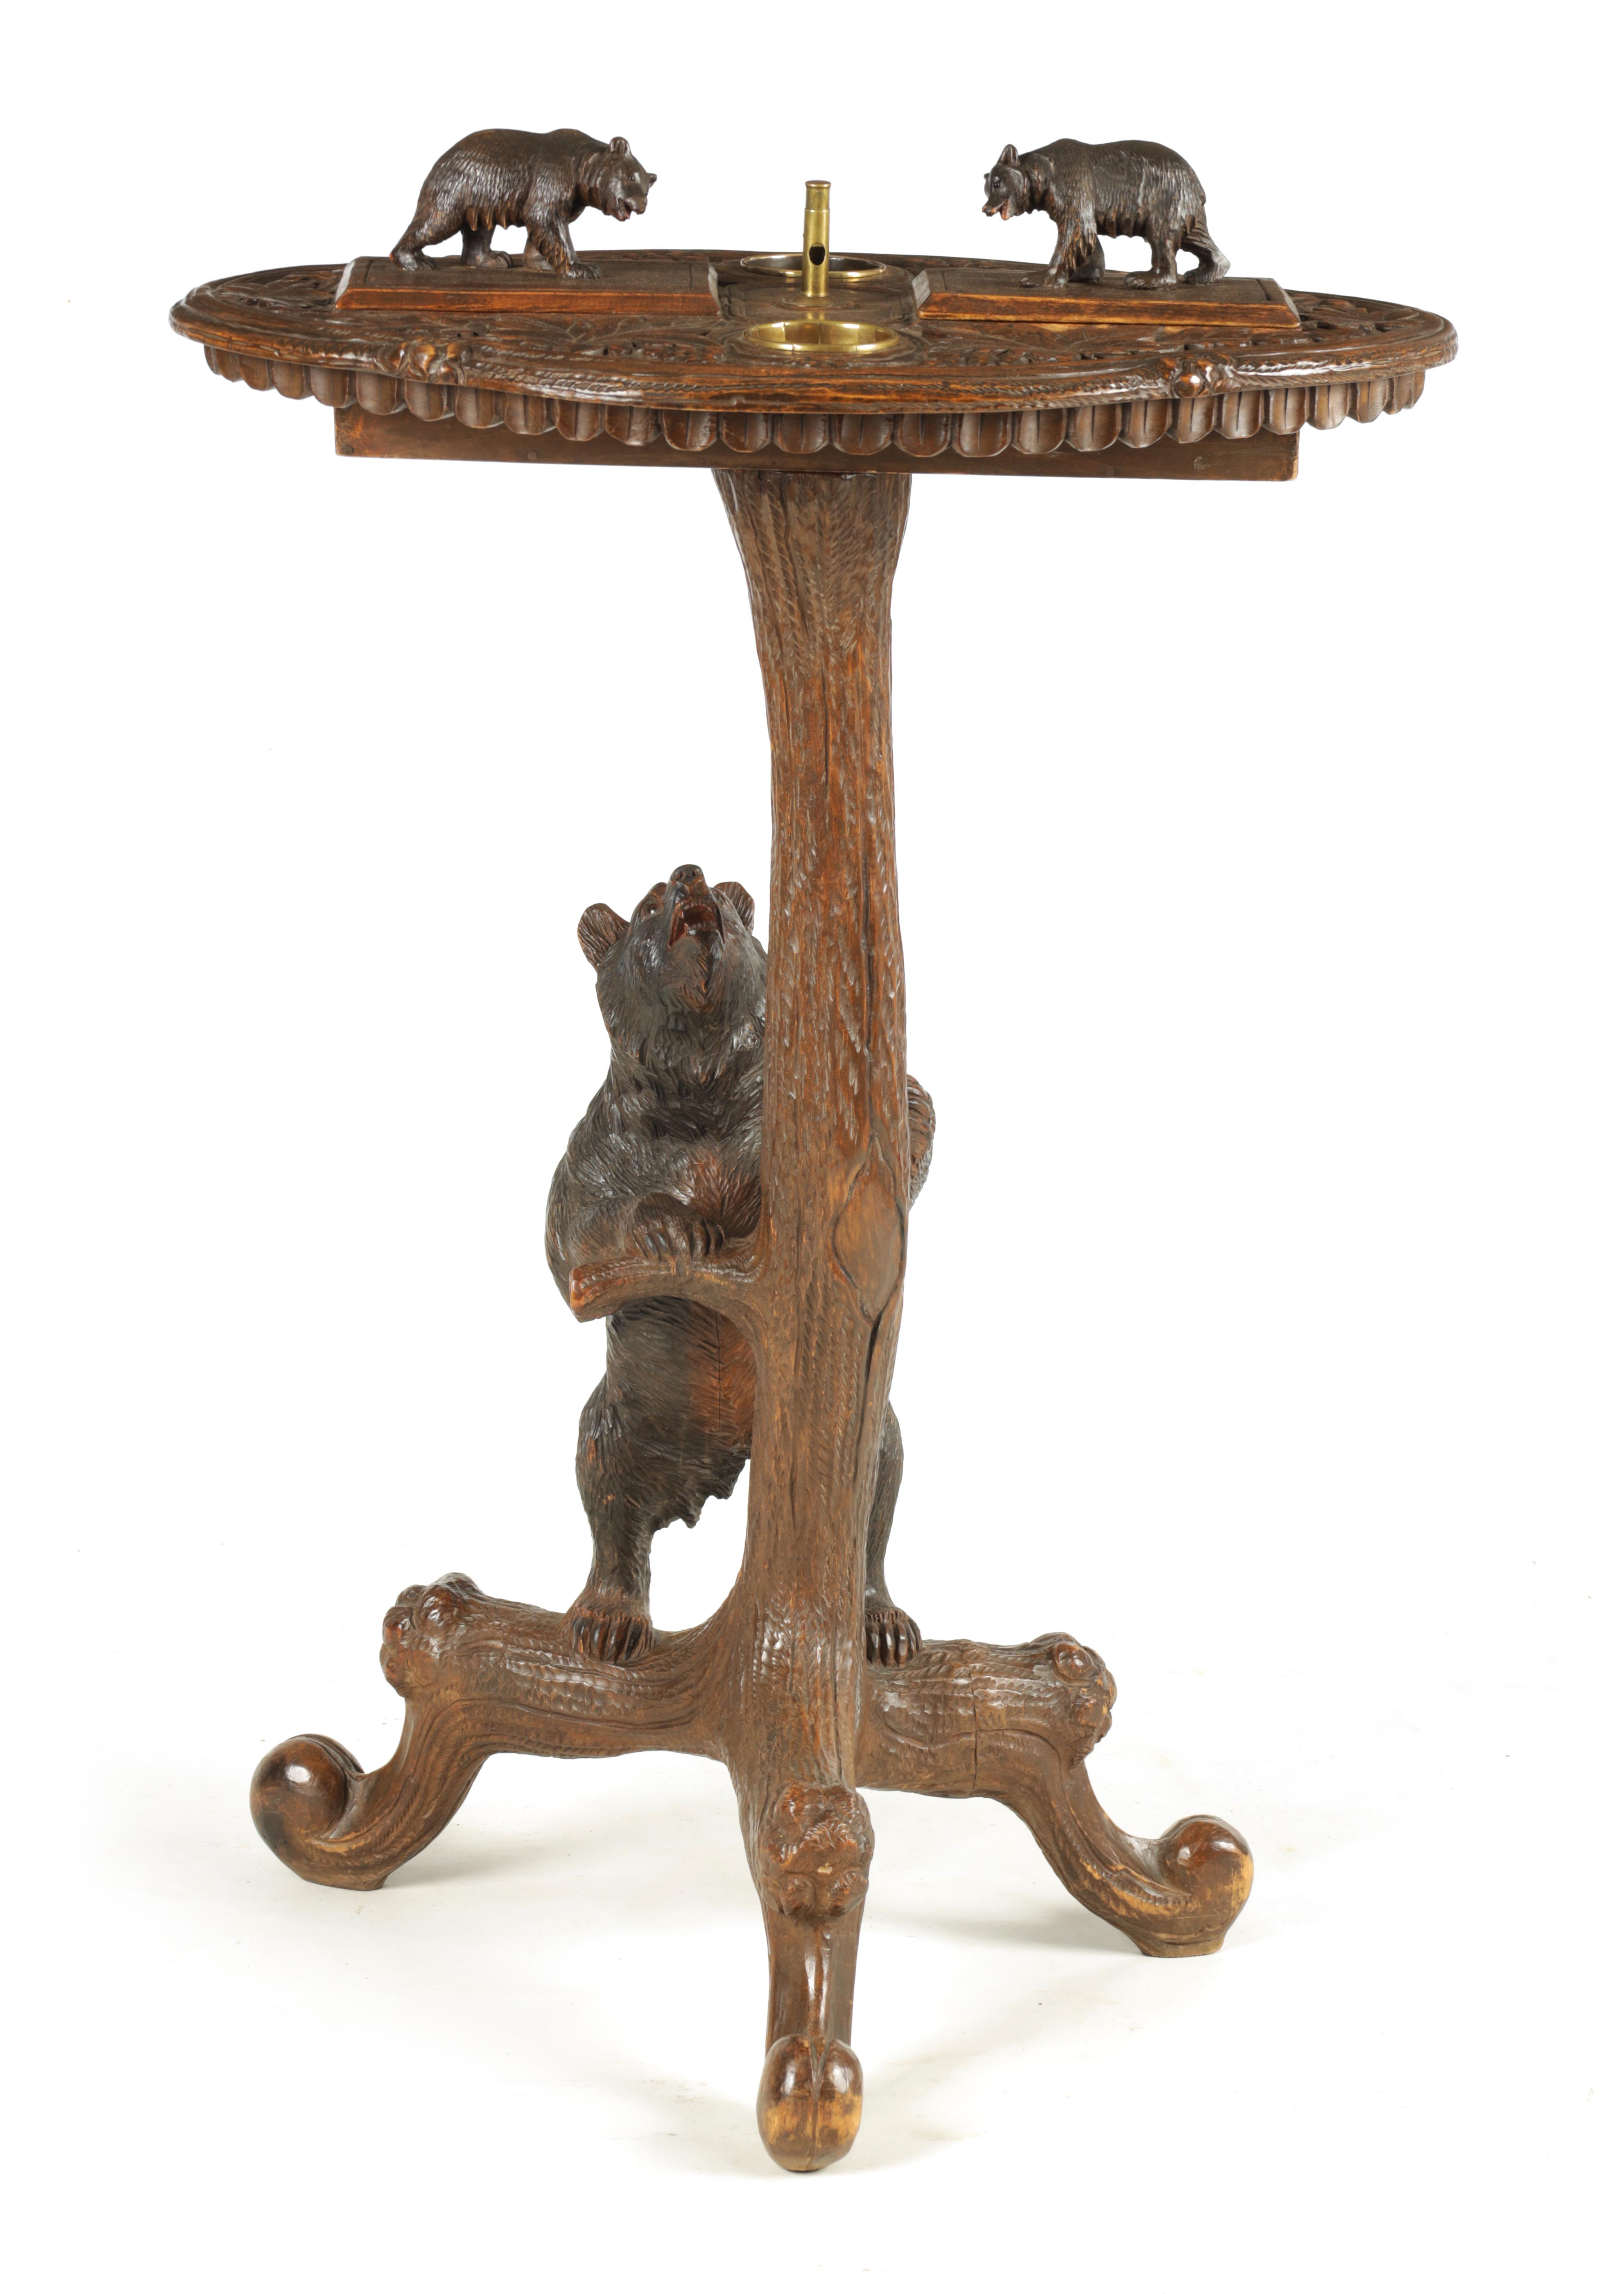 A LATE 19TH CENTURY SWISS CARVED BLACK FOREST SMOKERS TABLE with leaf carved top having two bear